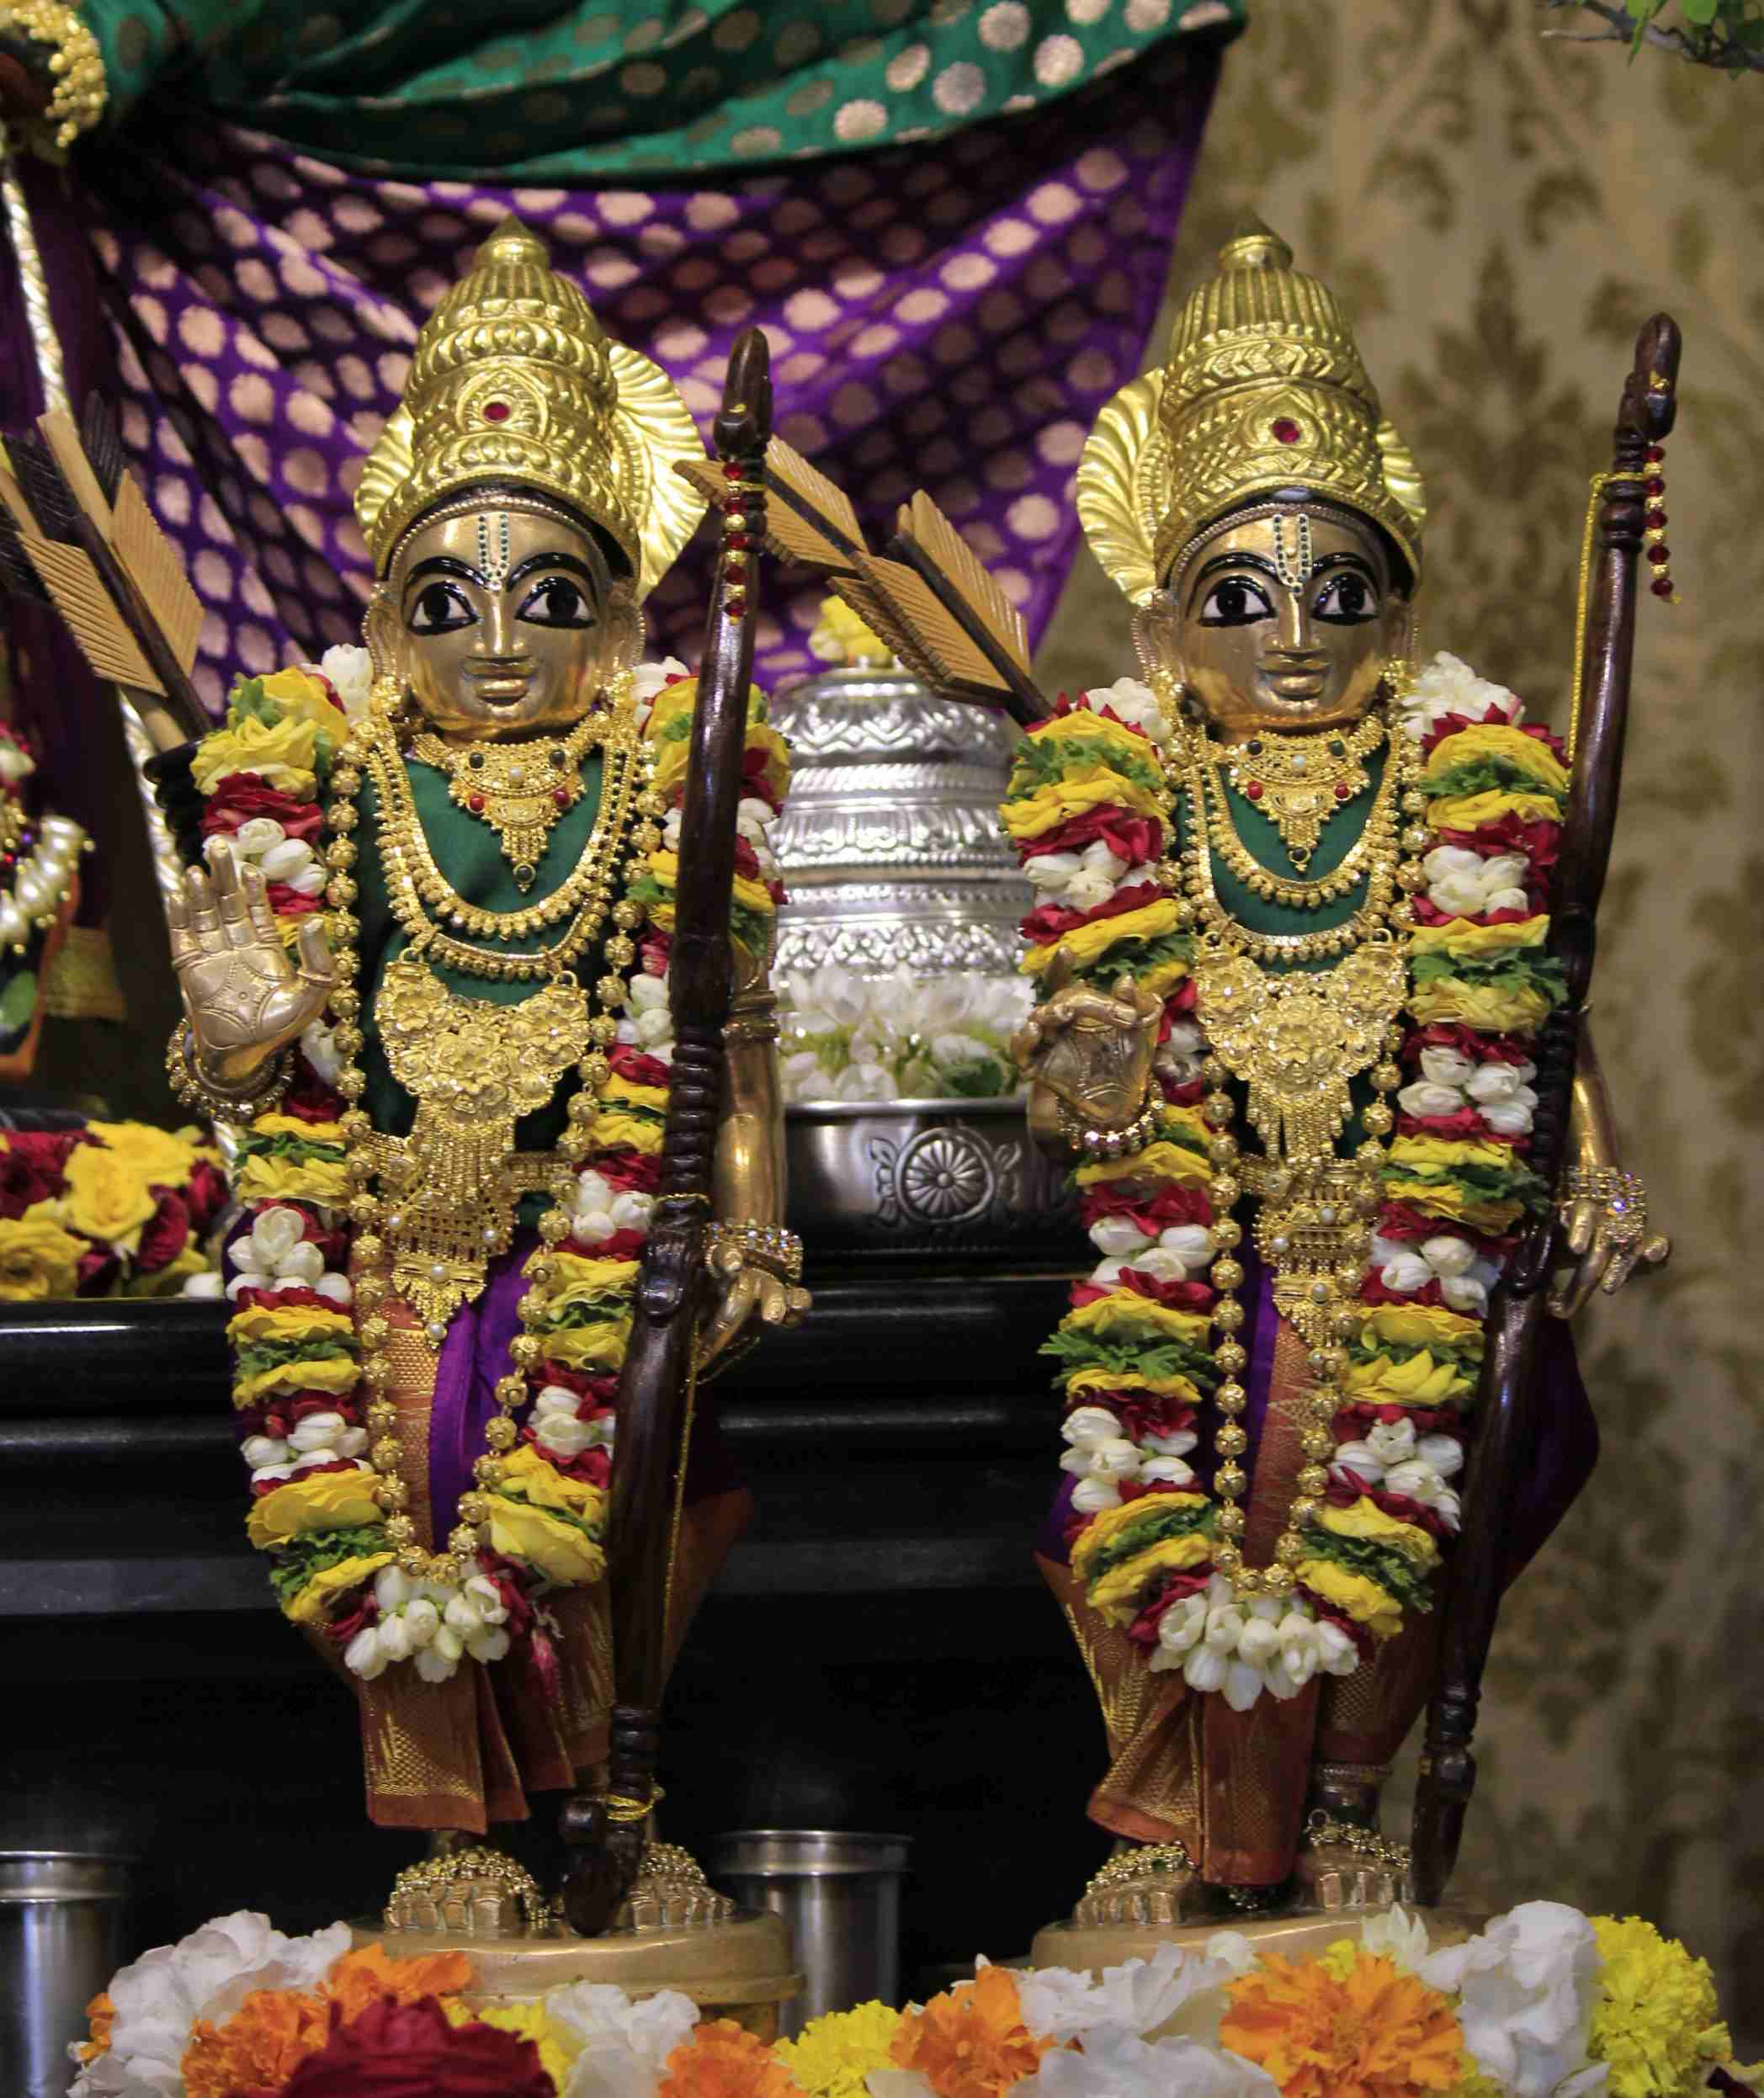 Sri Sri Krishna Balaram adorned as Sri Sri Rama Lakshman